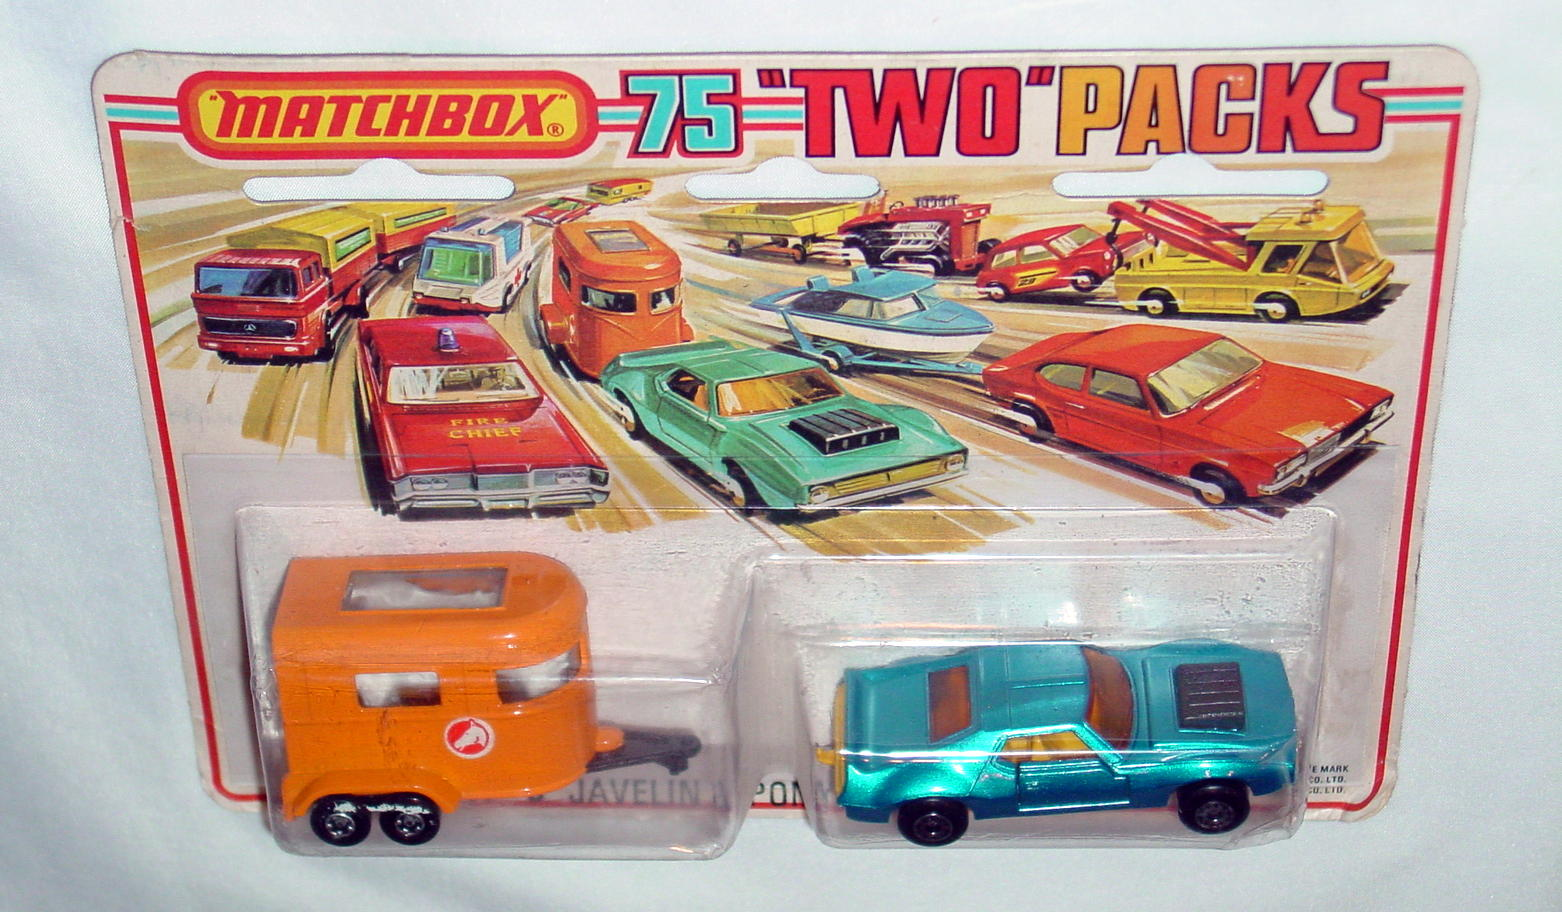 Twin Pack 03 A 2 - met Blue 9B16 Javelin org43A3 Pony trailer C9 Tallcard